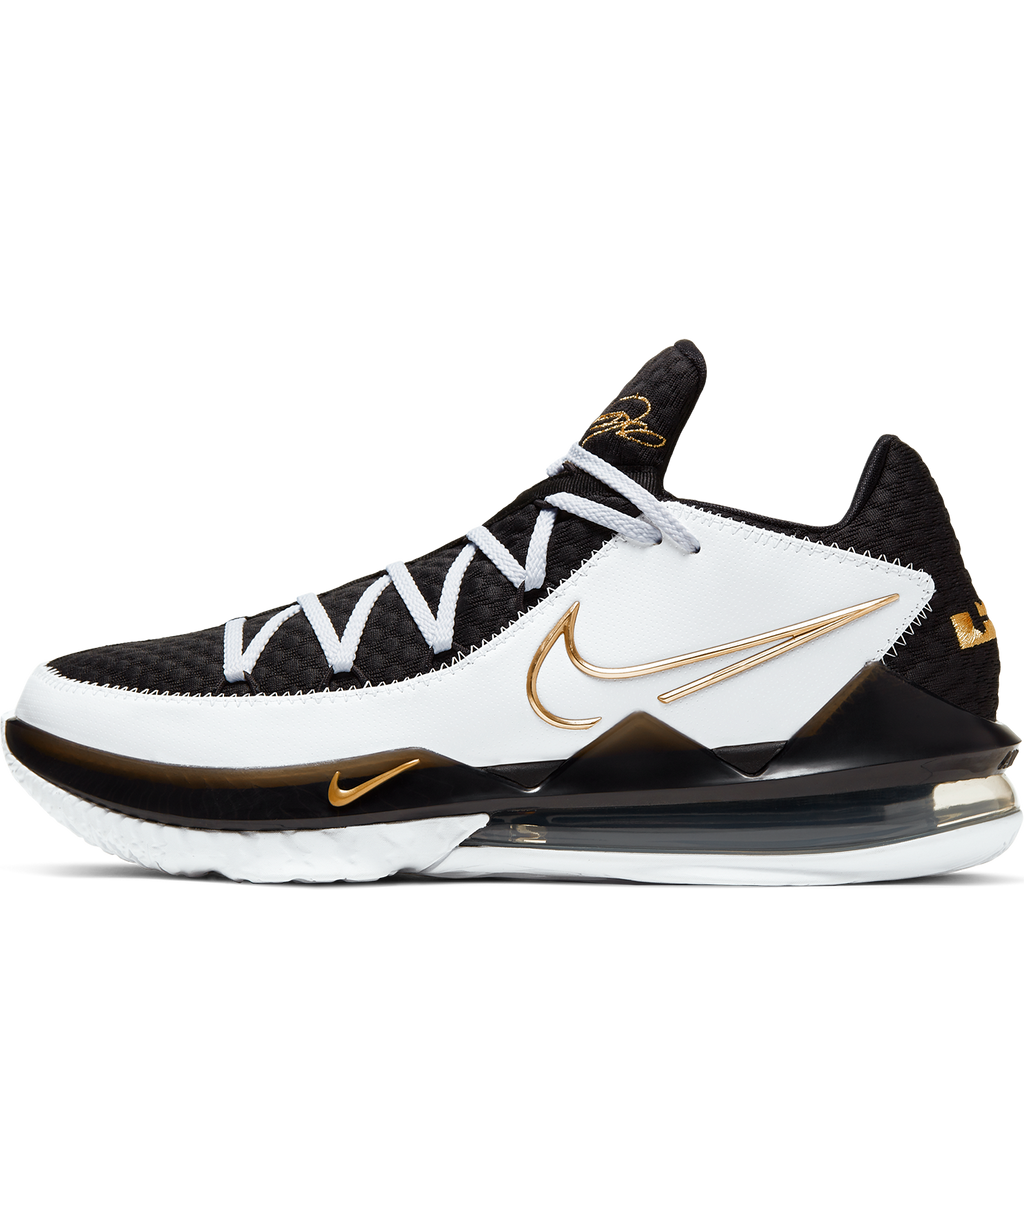 LeBron 17 Low White/Metallic Gold-Black